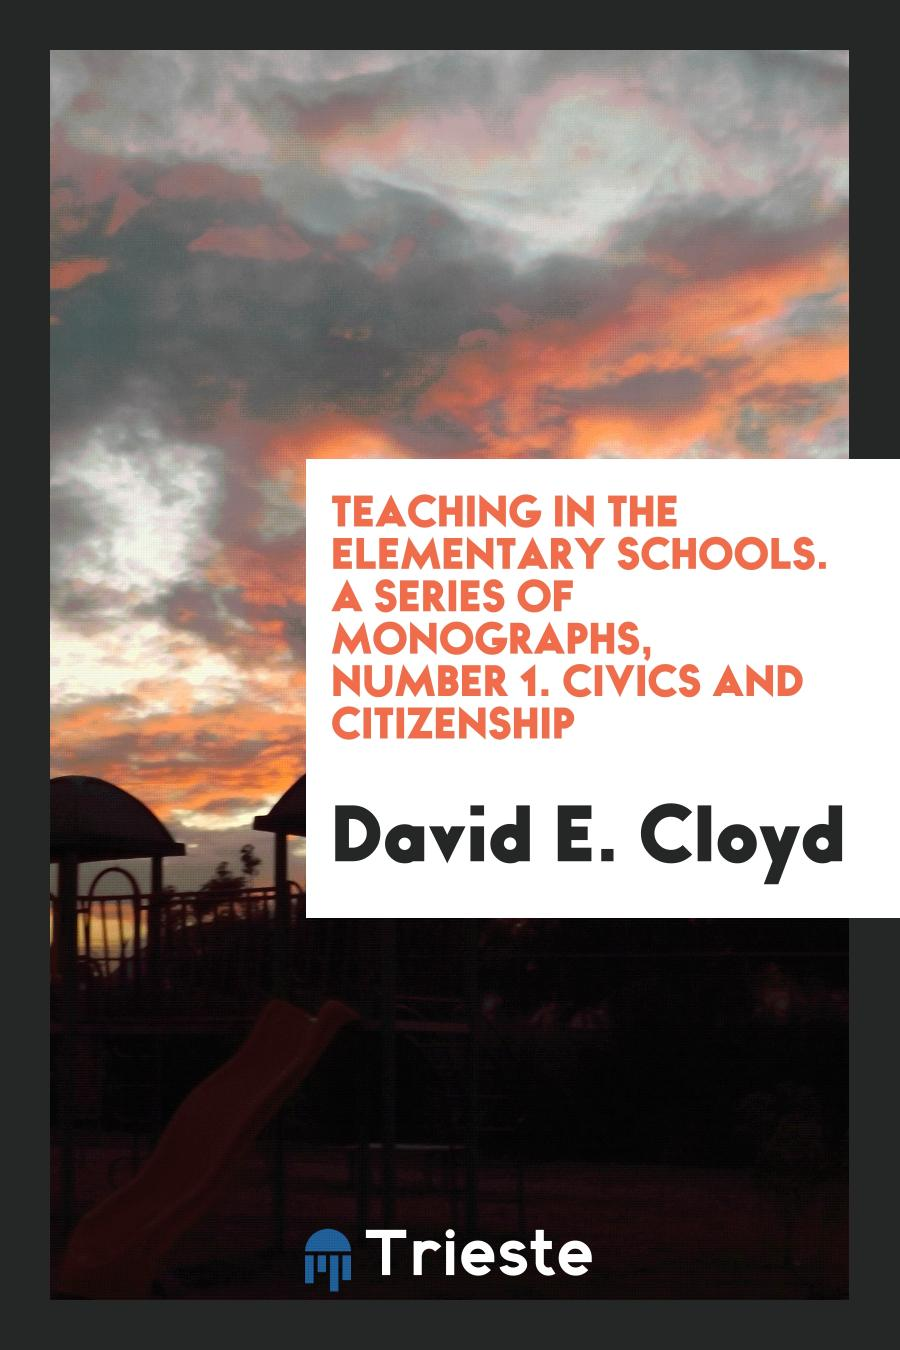 Teaching in the elementary schools. A series of monographs, number 1. Civics and Citizenship